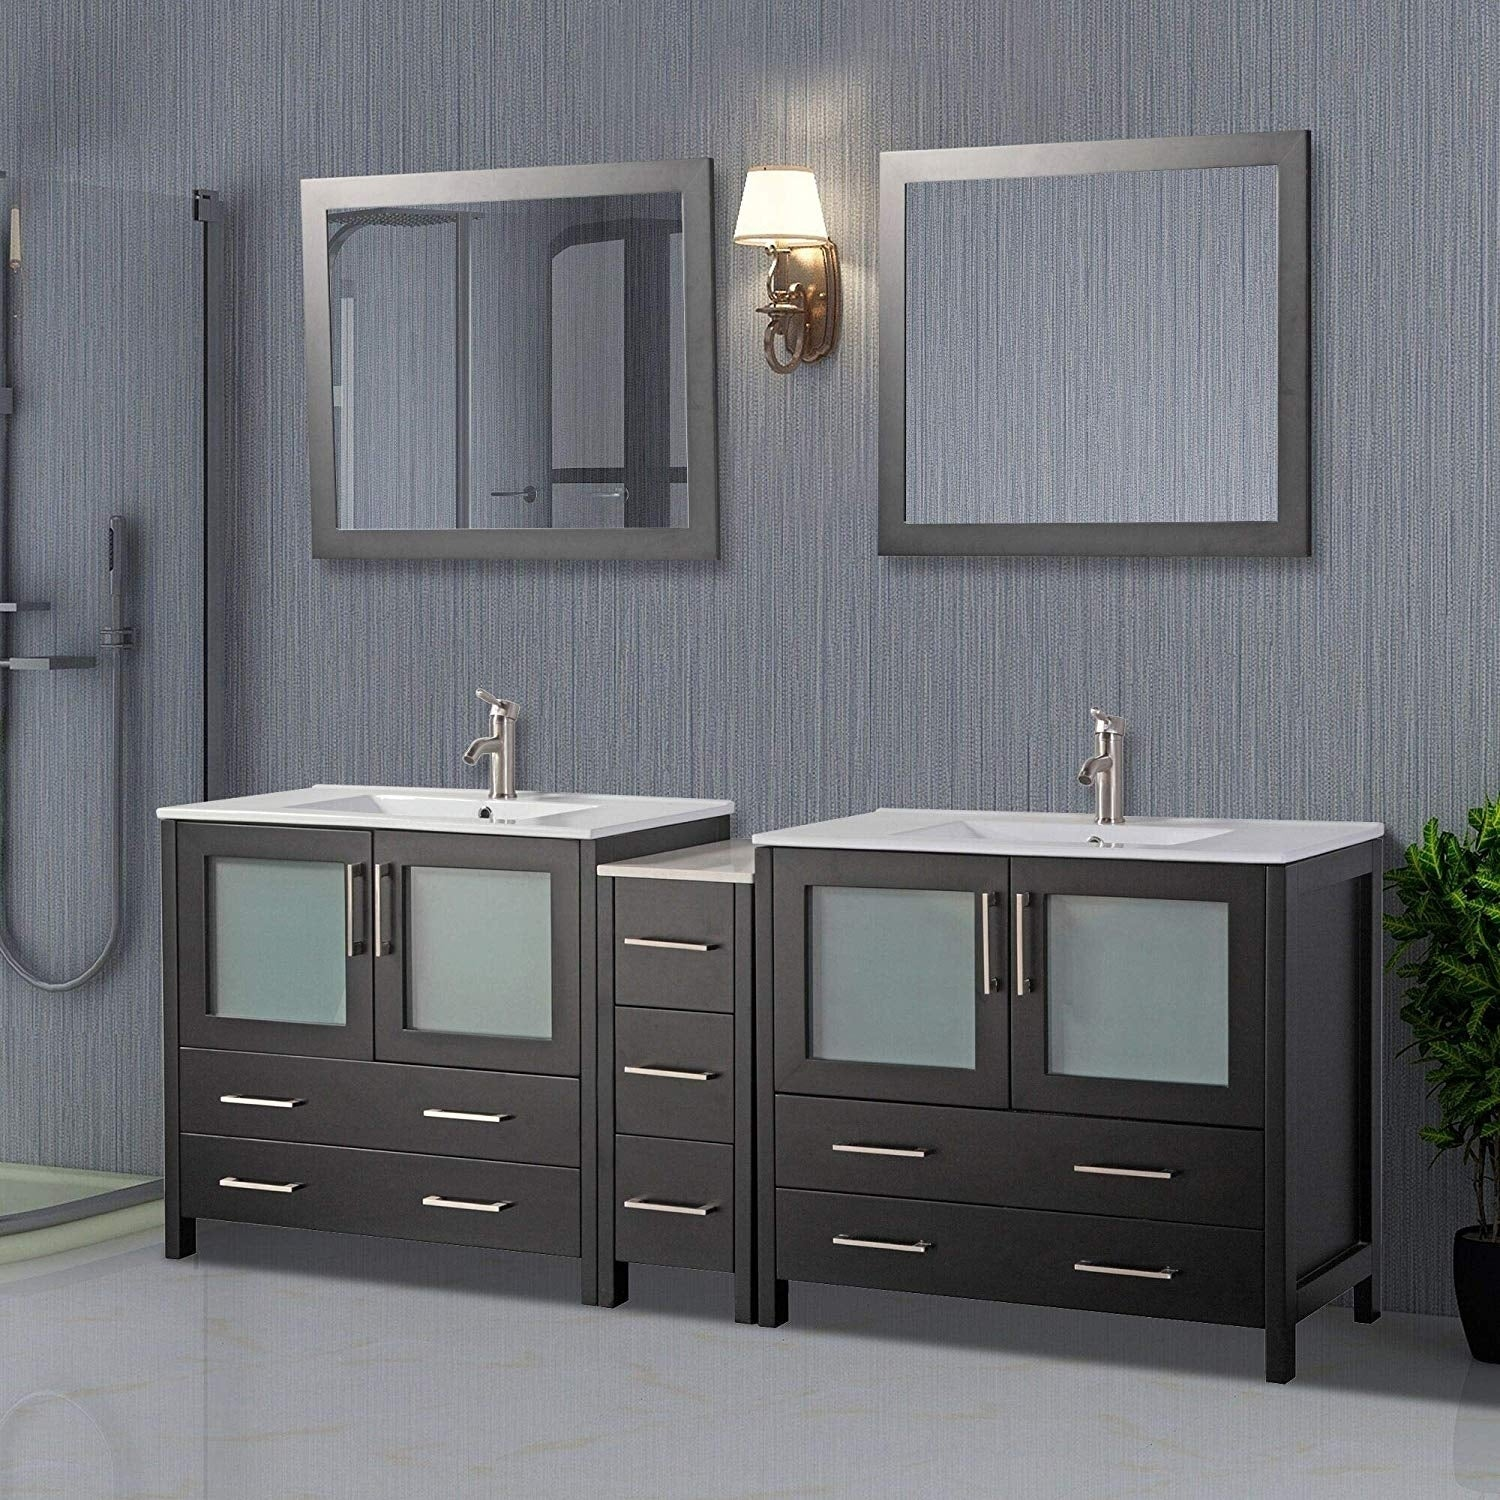 Shop Black Friday Deals On Vanity Art 84 Inch Double Sink Bathroom Vanity Set 7 Drawers 3 Cabinets 2 Shelves Soft Closing Doors With Free Mirror Overstock 12609926